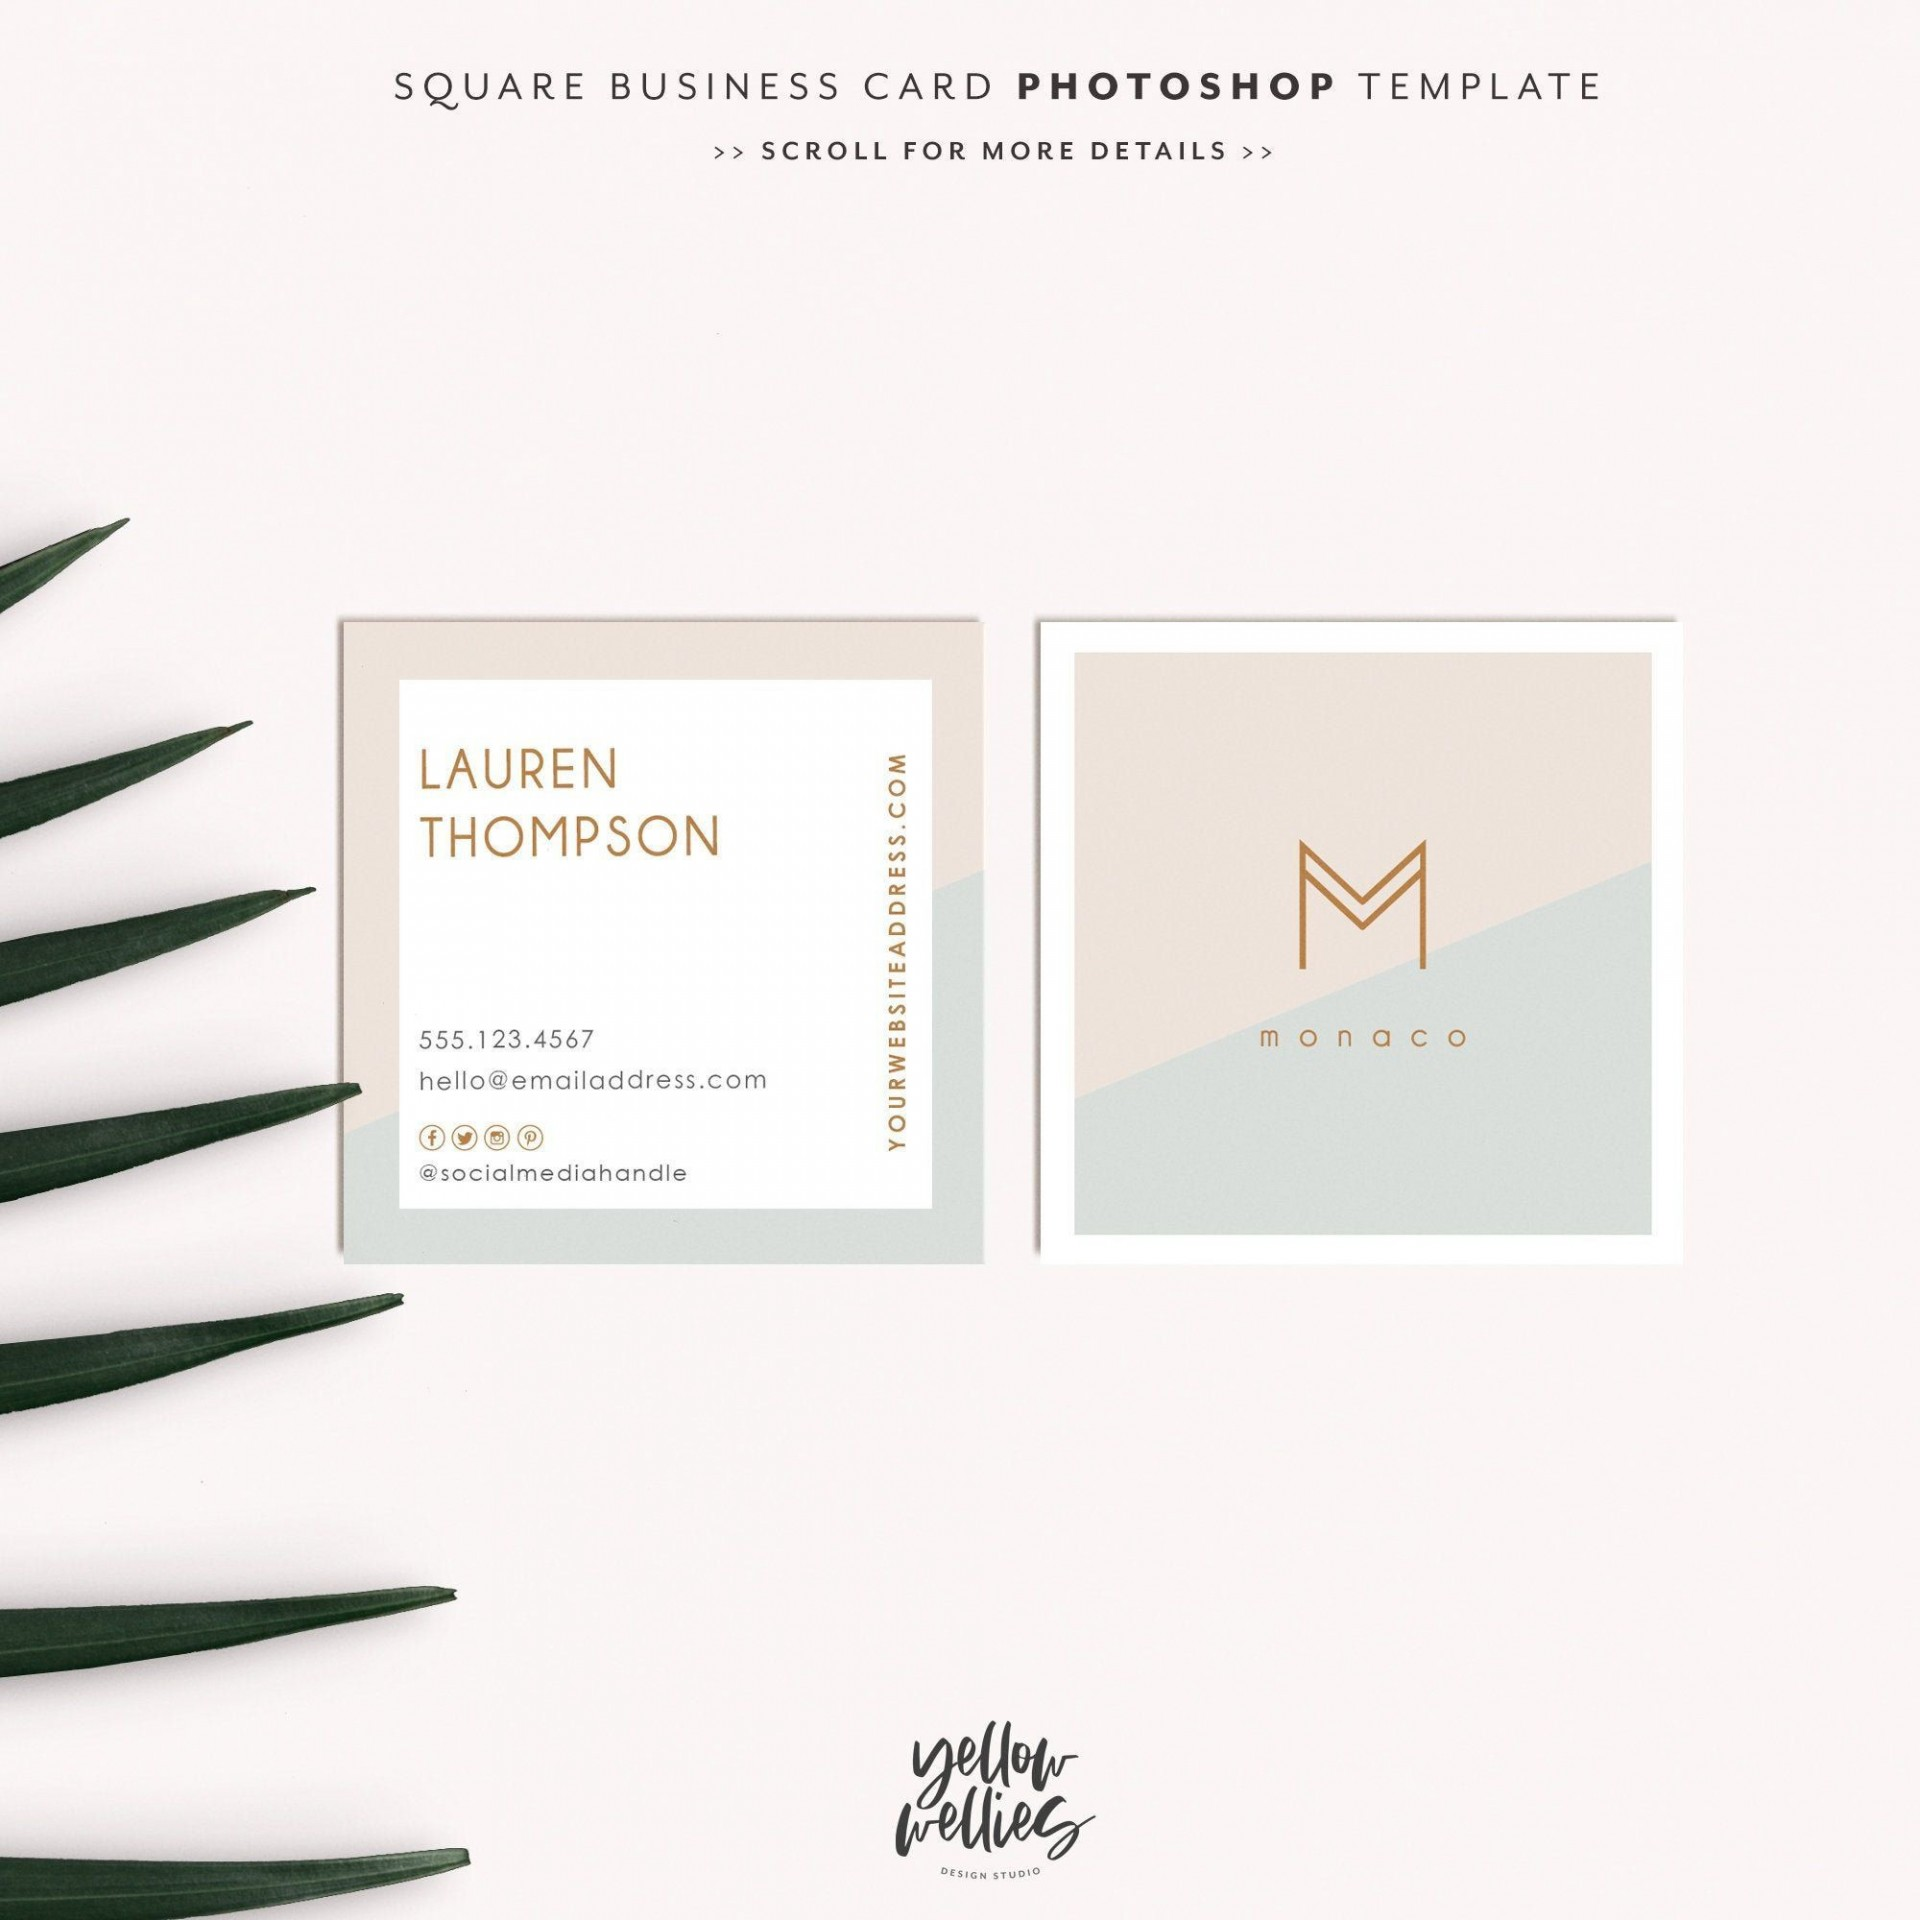 001 Formidable Square Busines Card Template Example  Free Download Photoshop1920